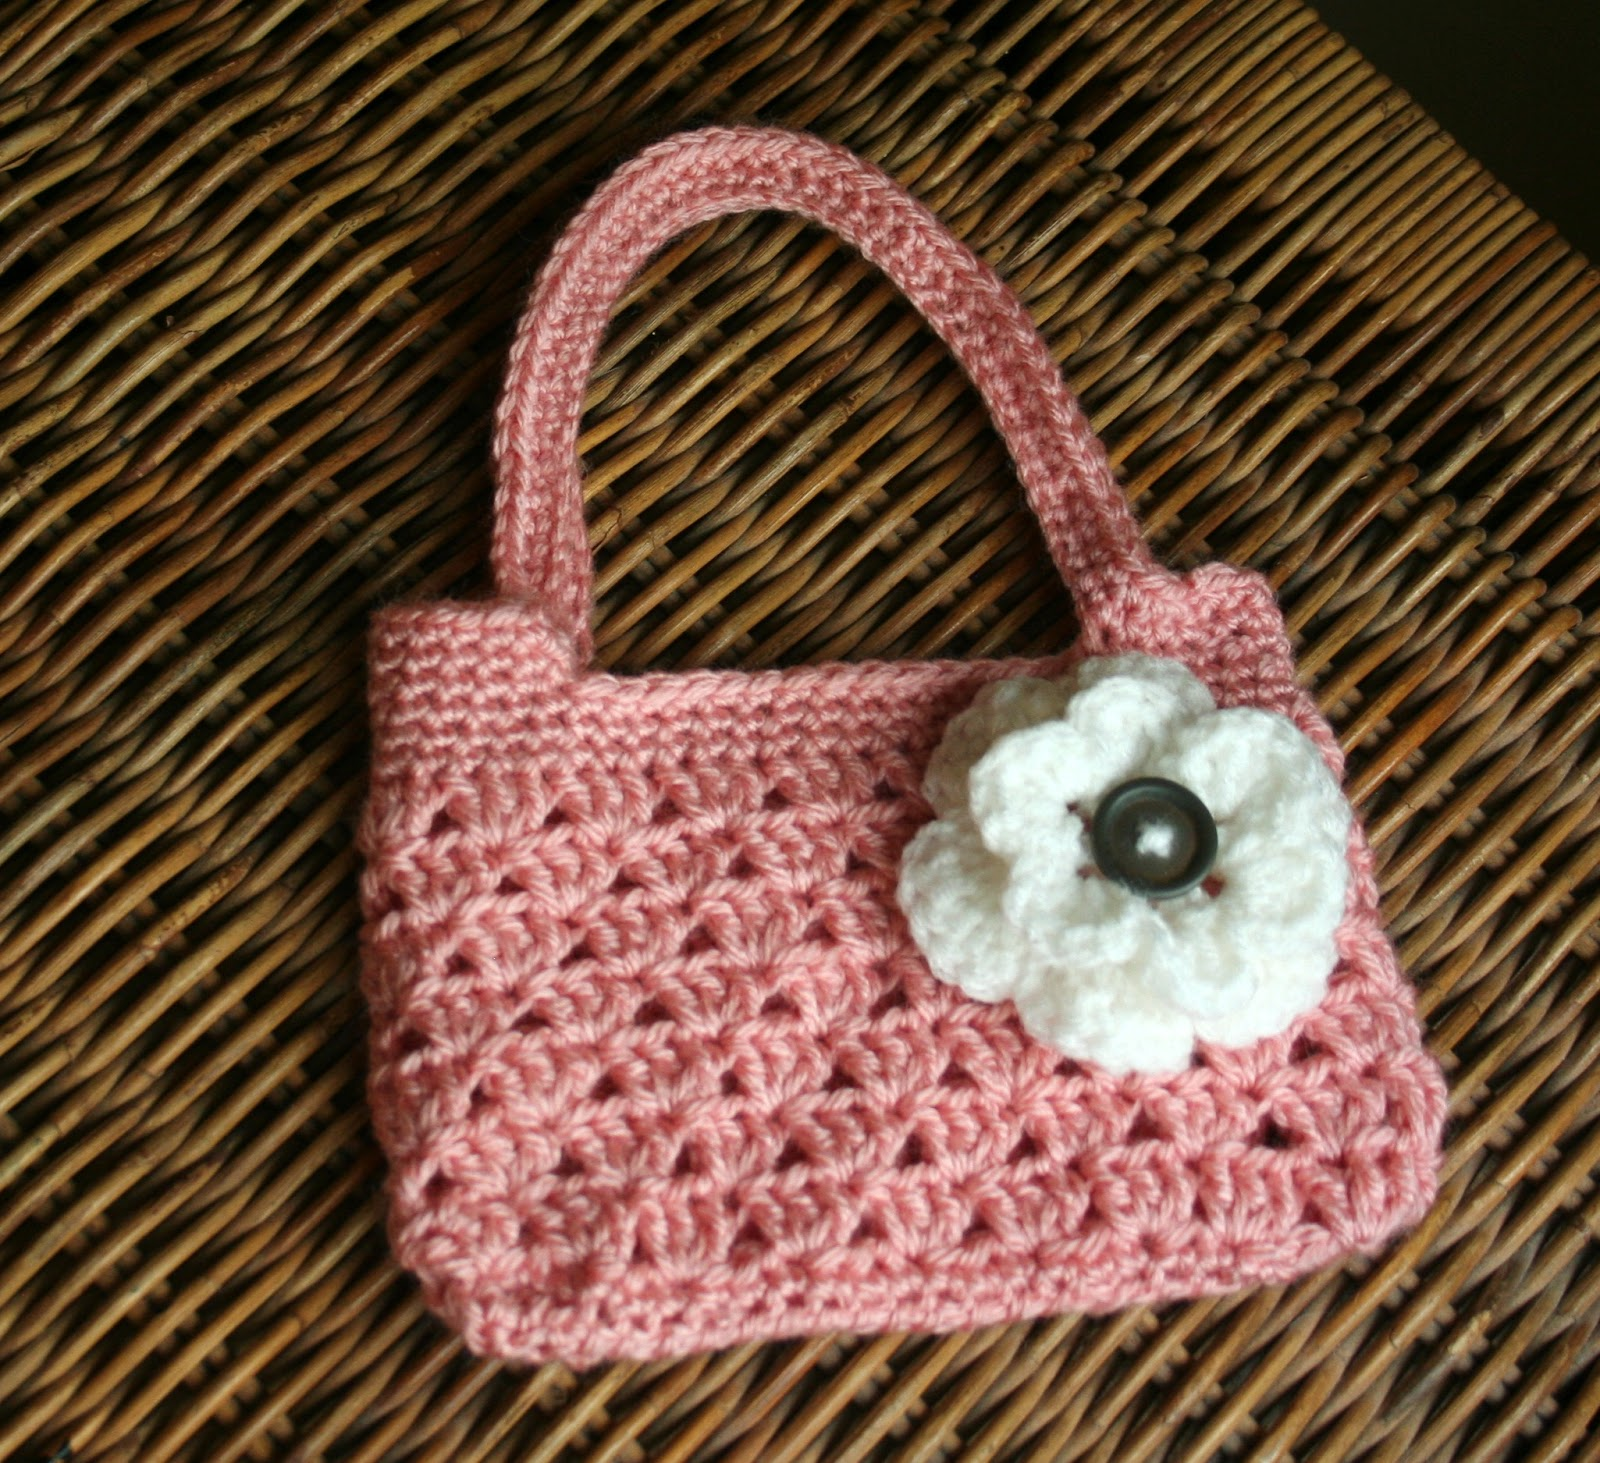 Free Crochet Pattern Bag : Tampa Bay Crochet: Free Easy Crochet Purse Pattern